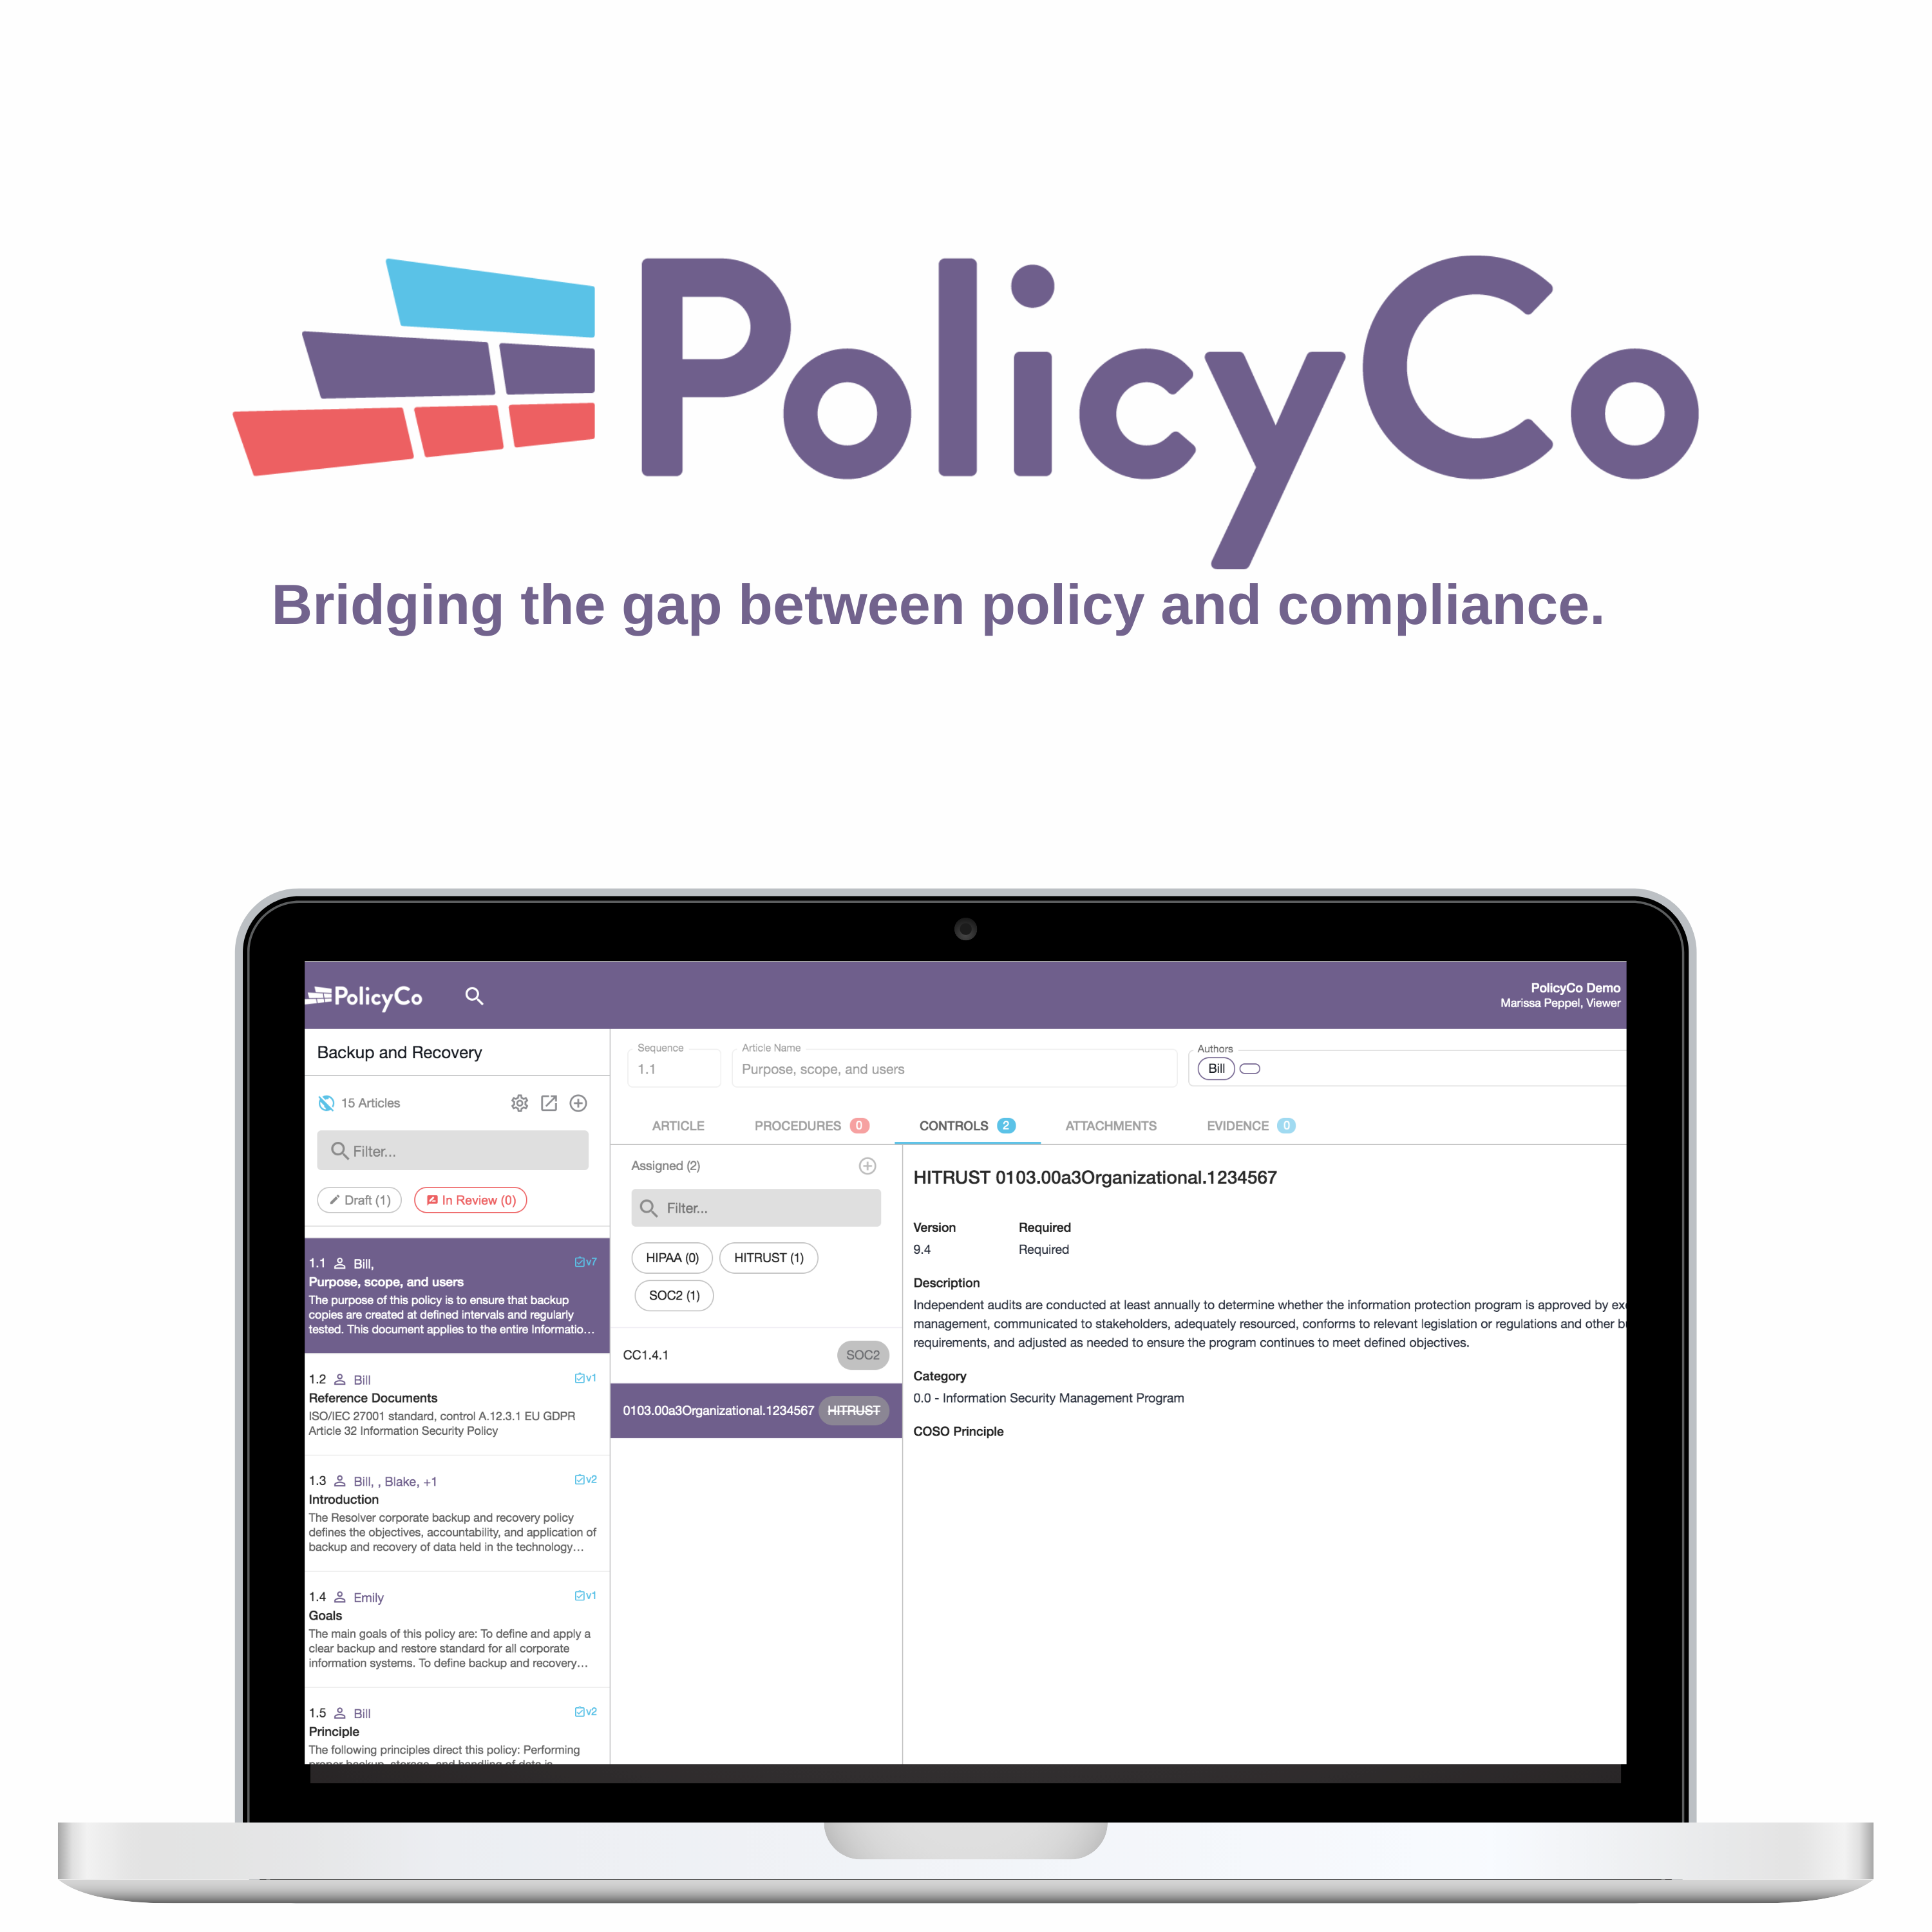 A Quick Overview of PolicyCo | PolicyCo